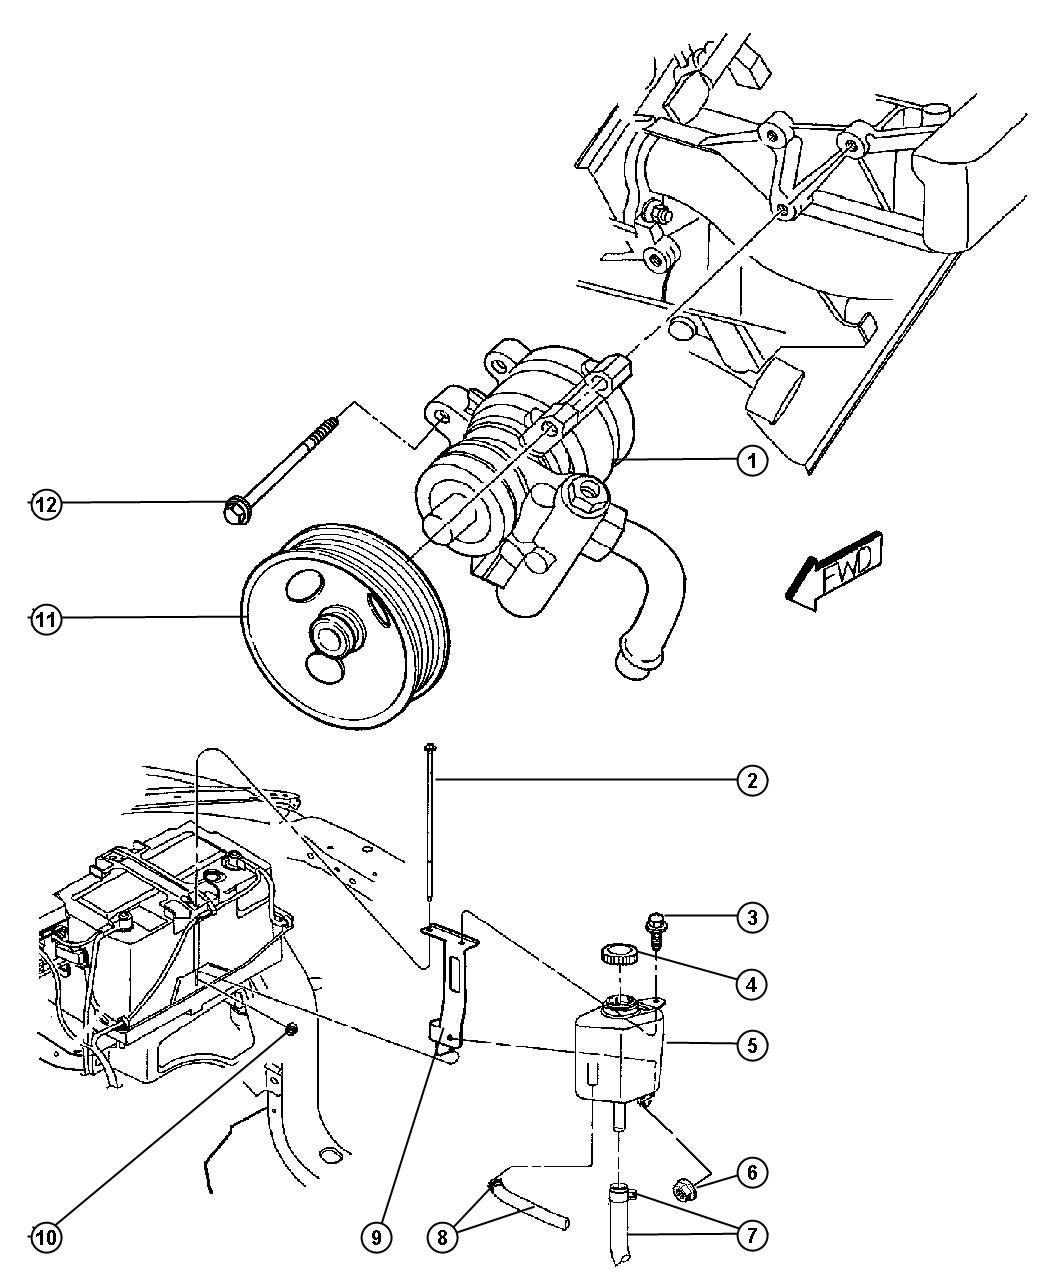 Dodge Dakota Pump Power Steering Without Pulley